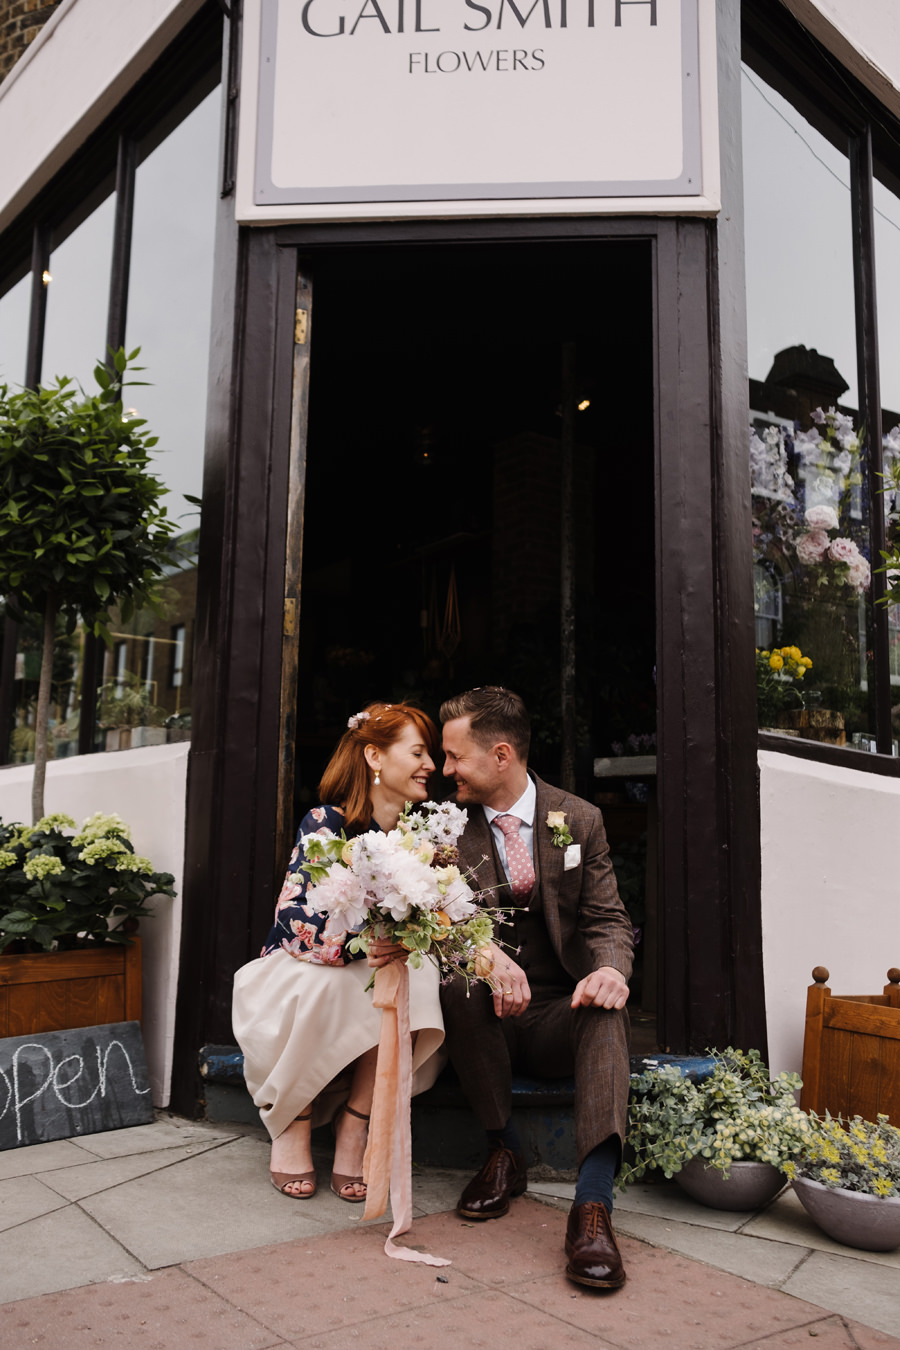 London Wedding Photographer couple gail smith flowers